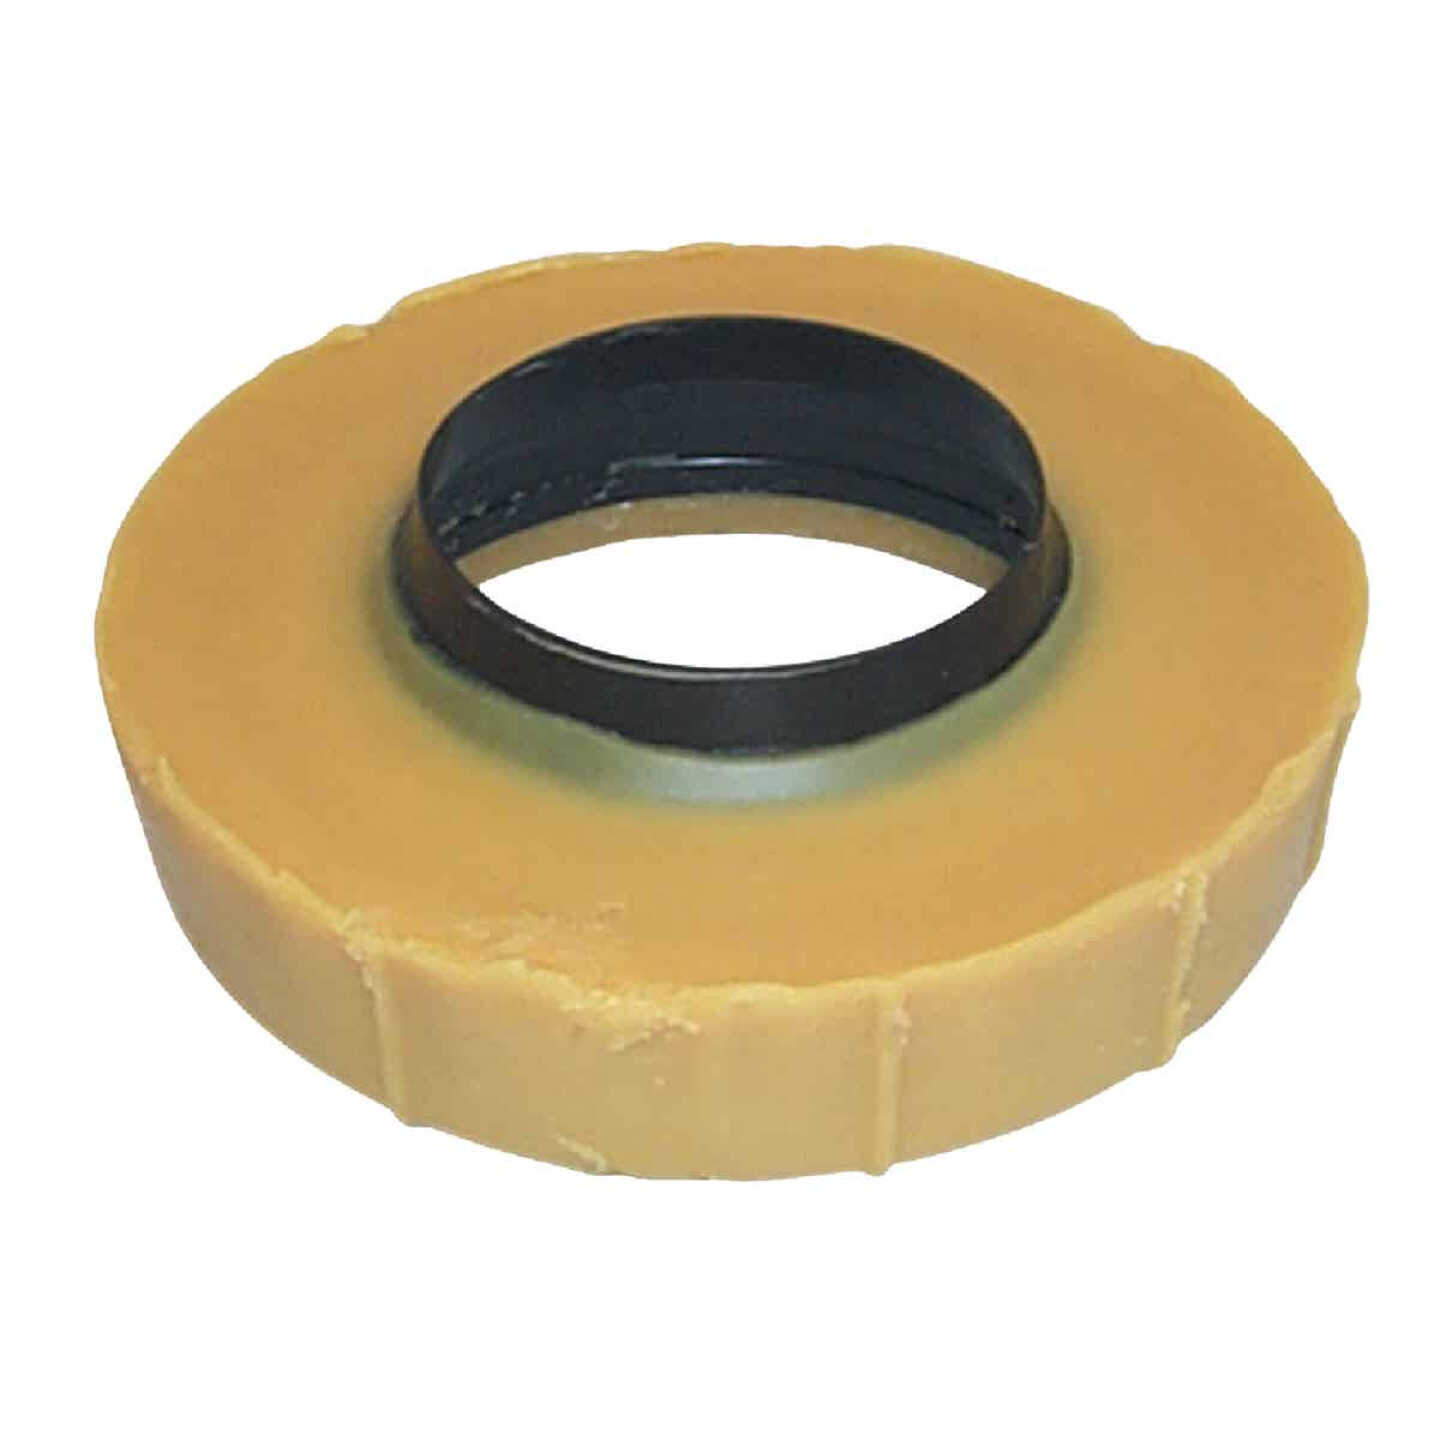 Do it Extra Thick Wax Ring Bowl Gasket with Sleeve  Image 1